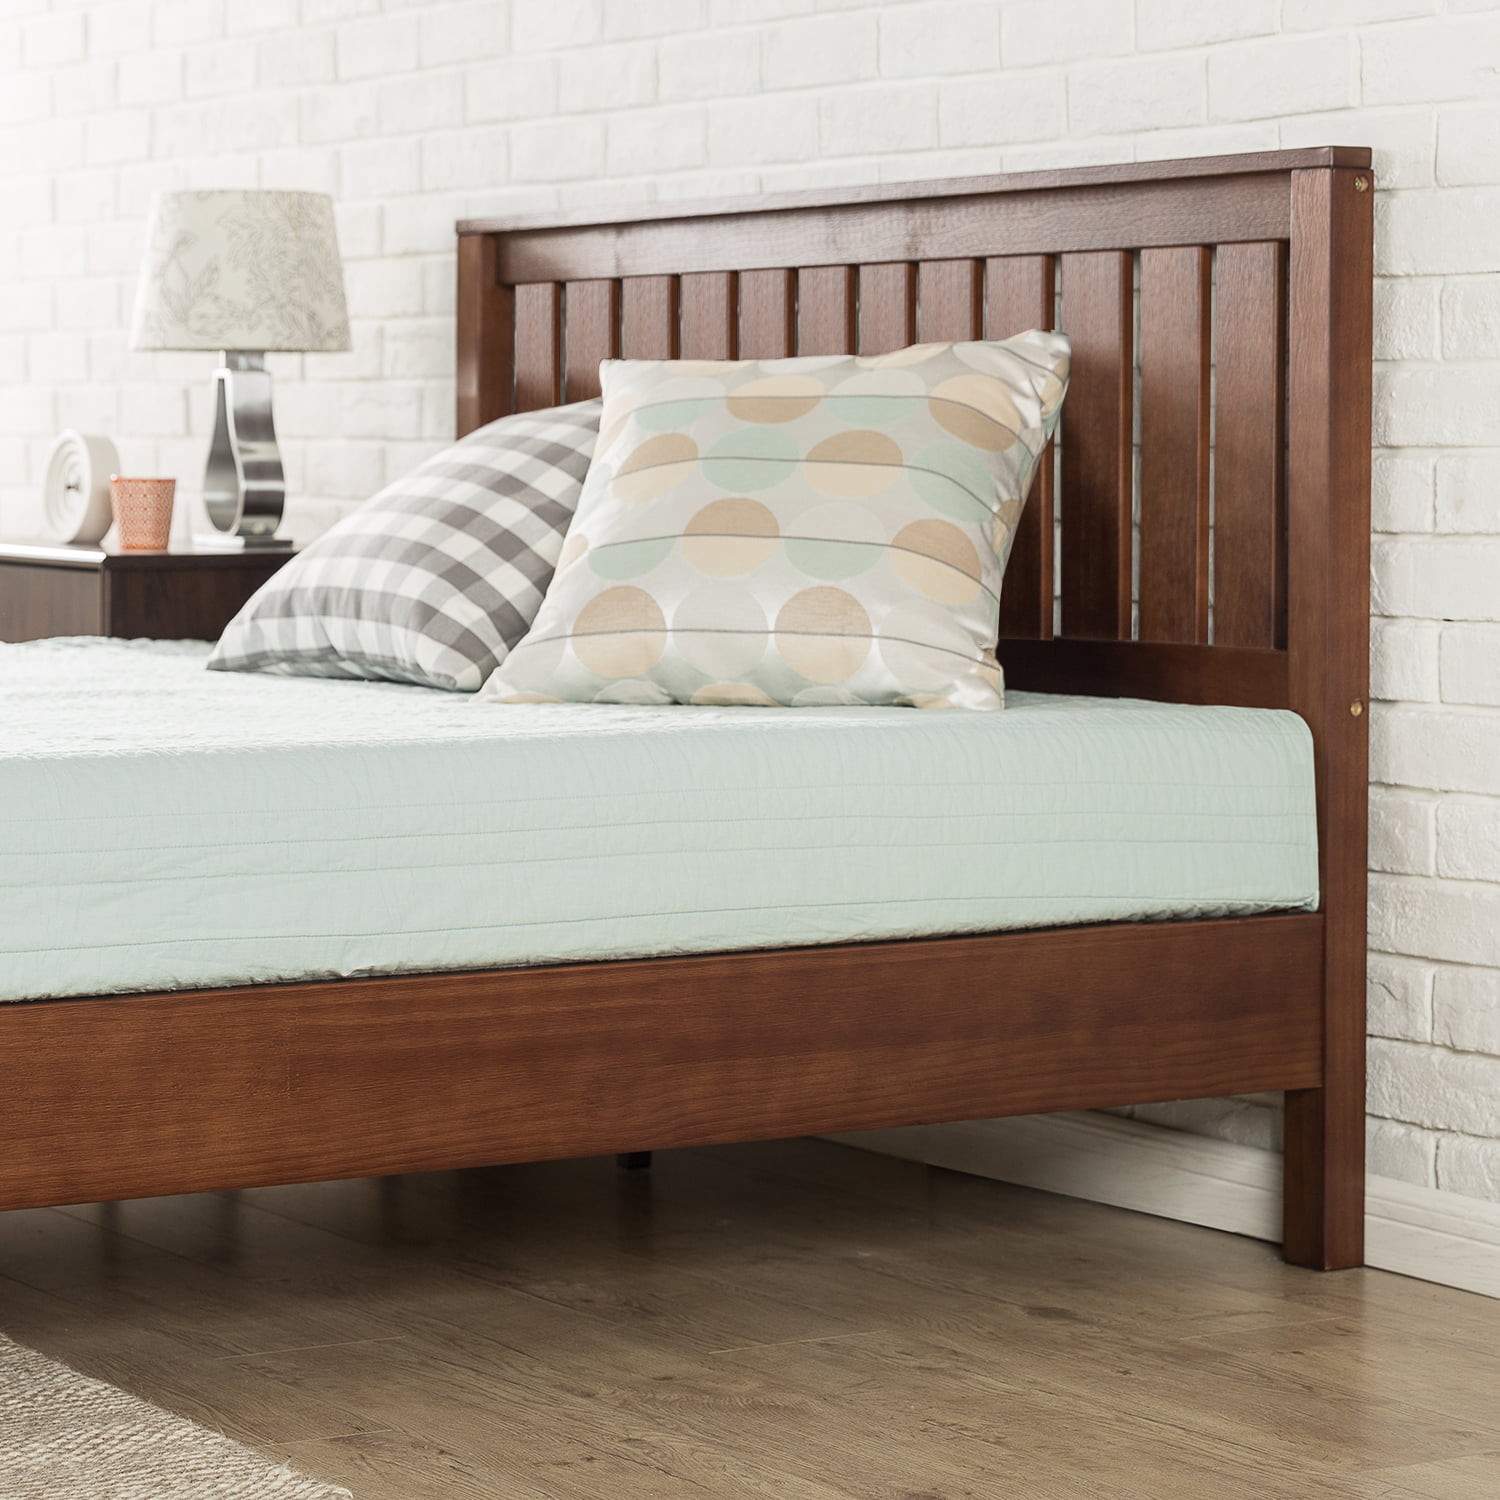 Zinus Deluxe Solid Wood Platform Bed With Headboard